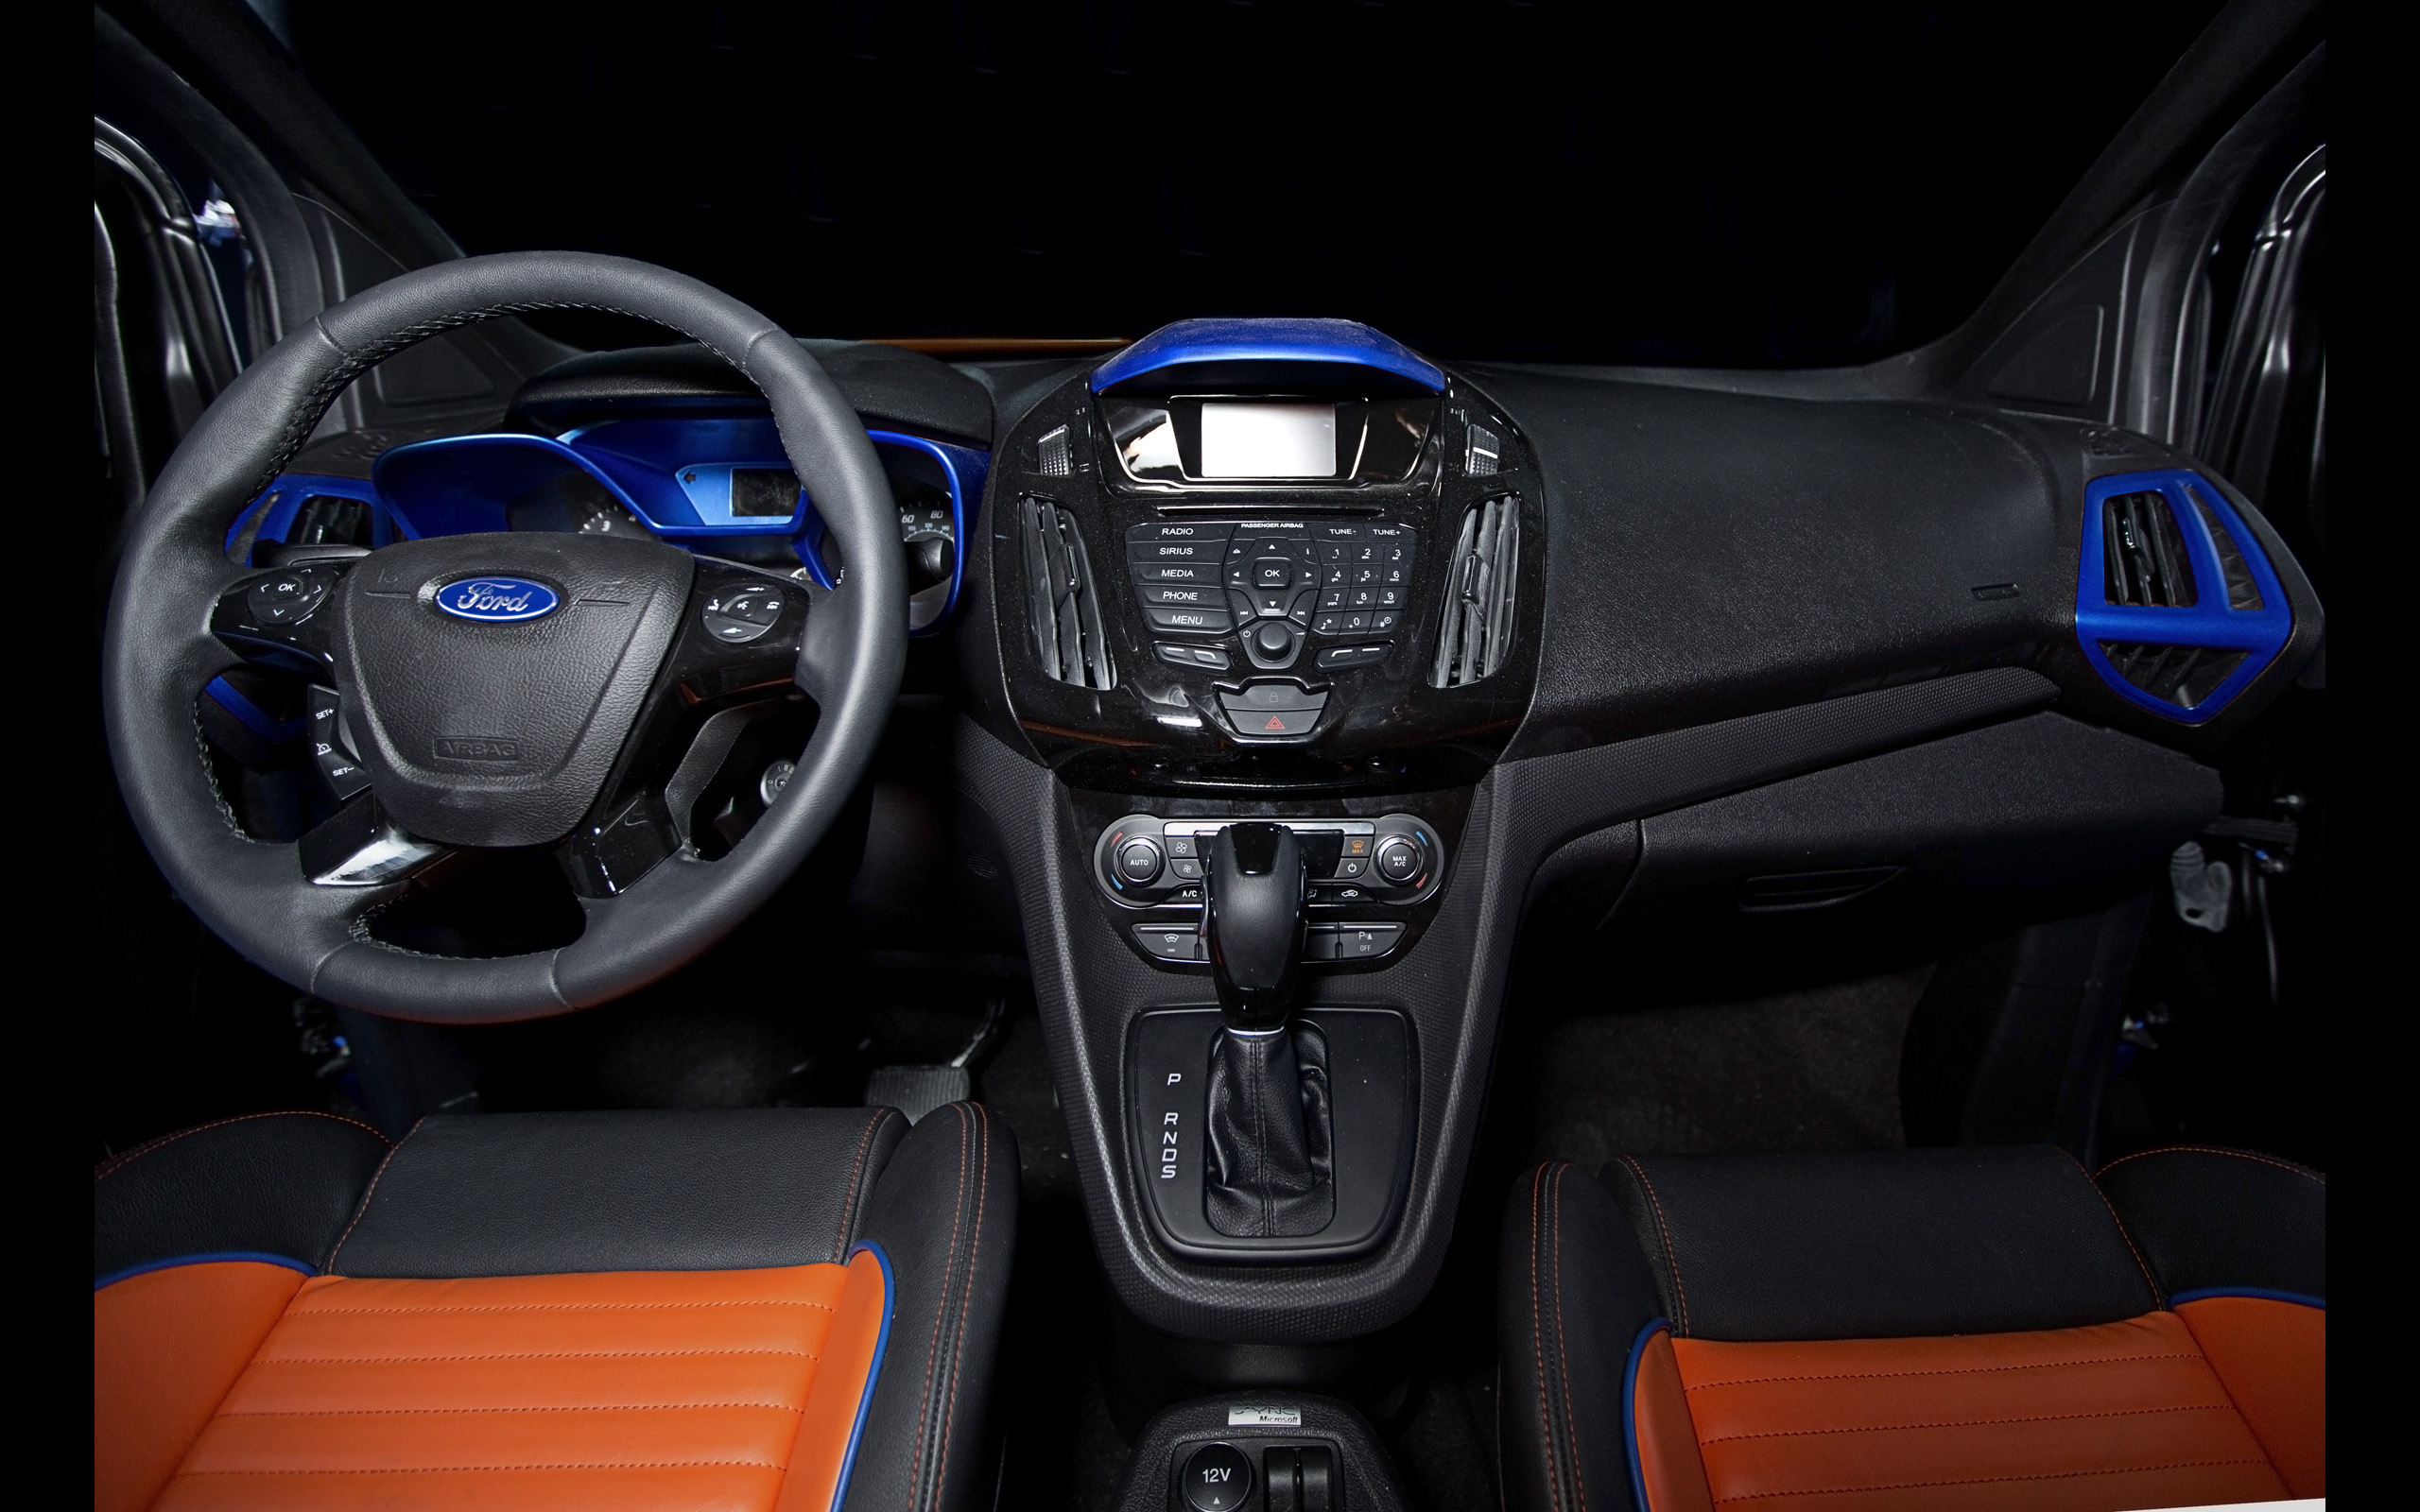 2014 Ford Transit Connect Hot Wheels suv tuning interior h wallpaper ...